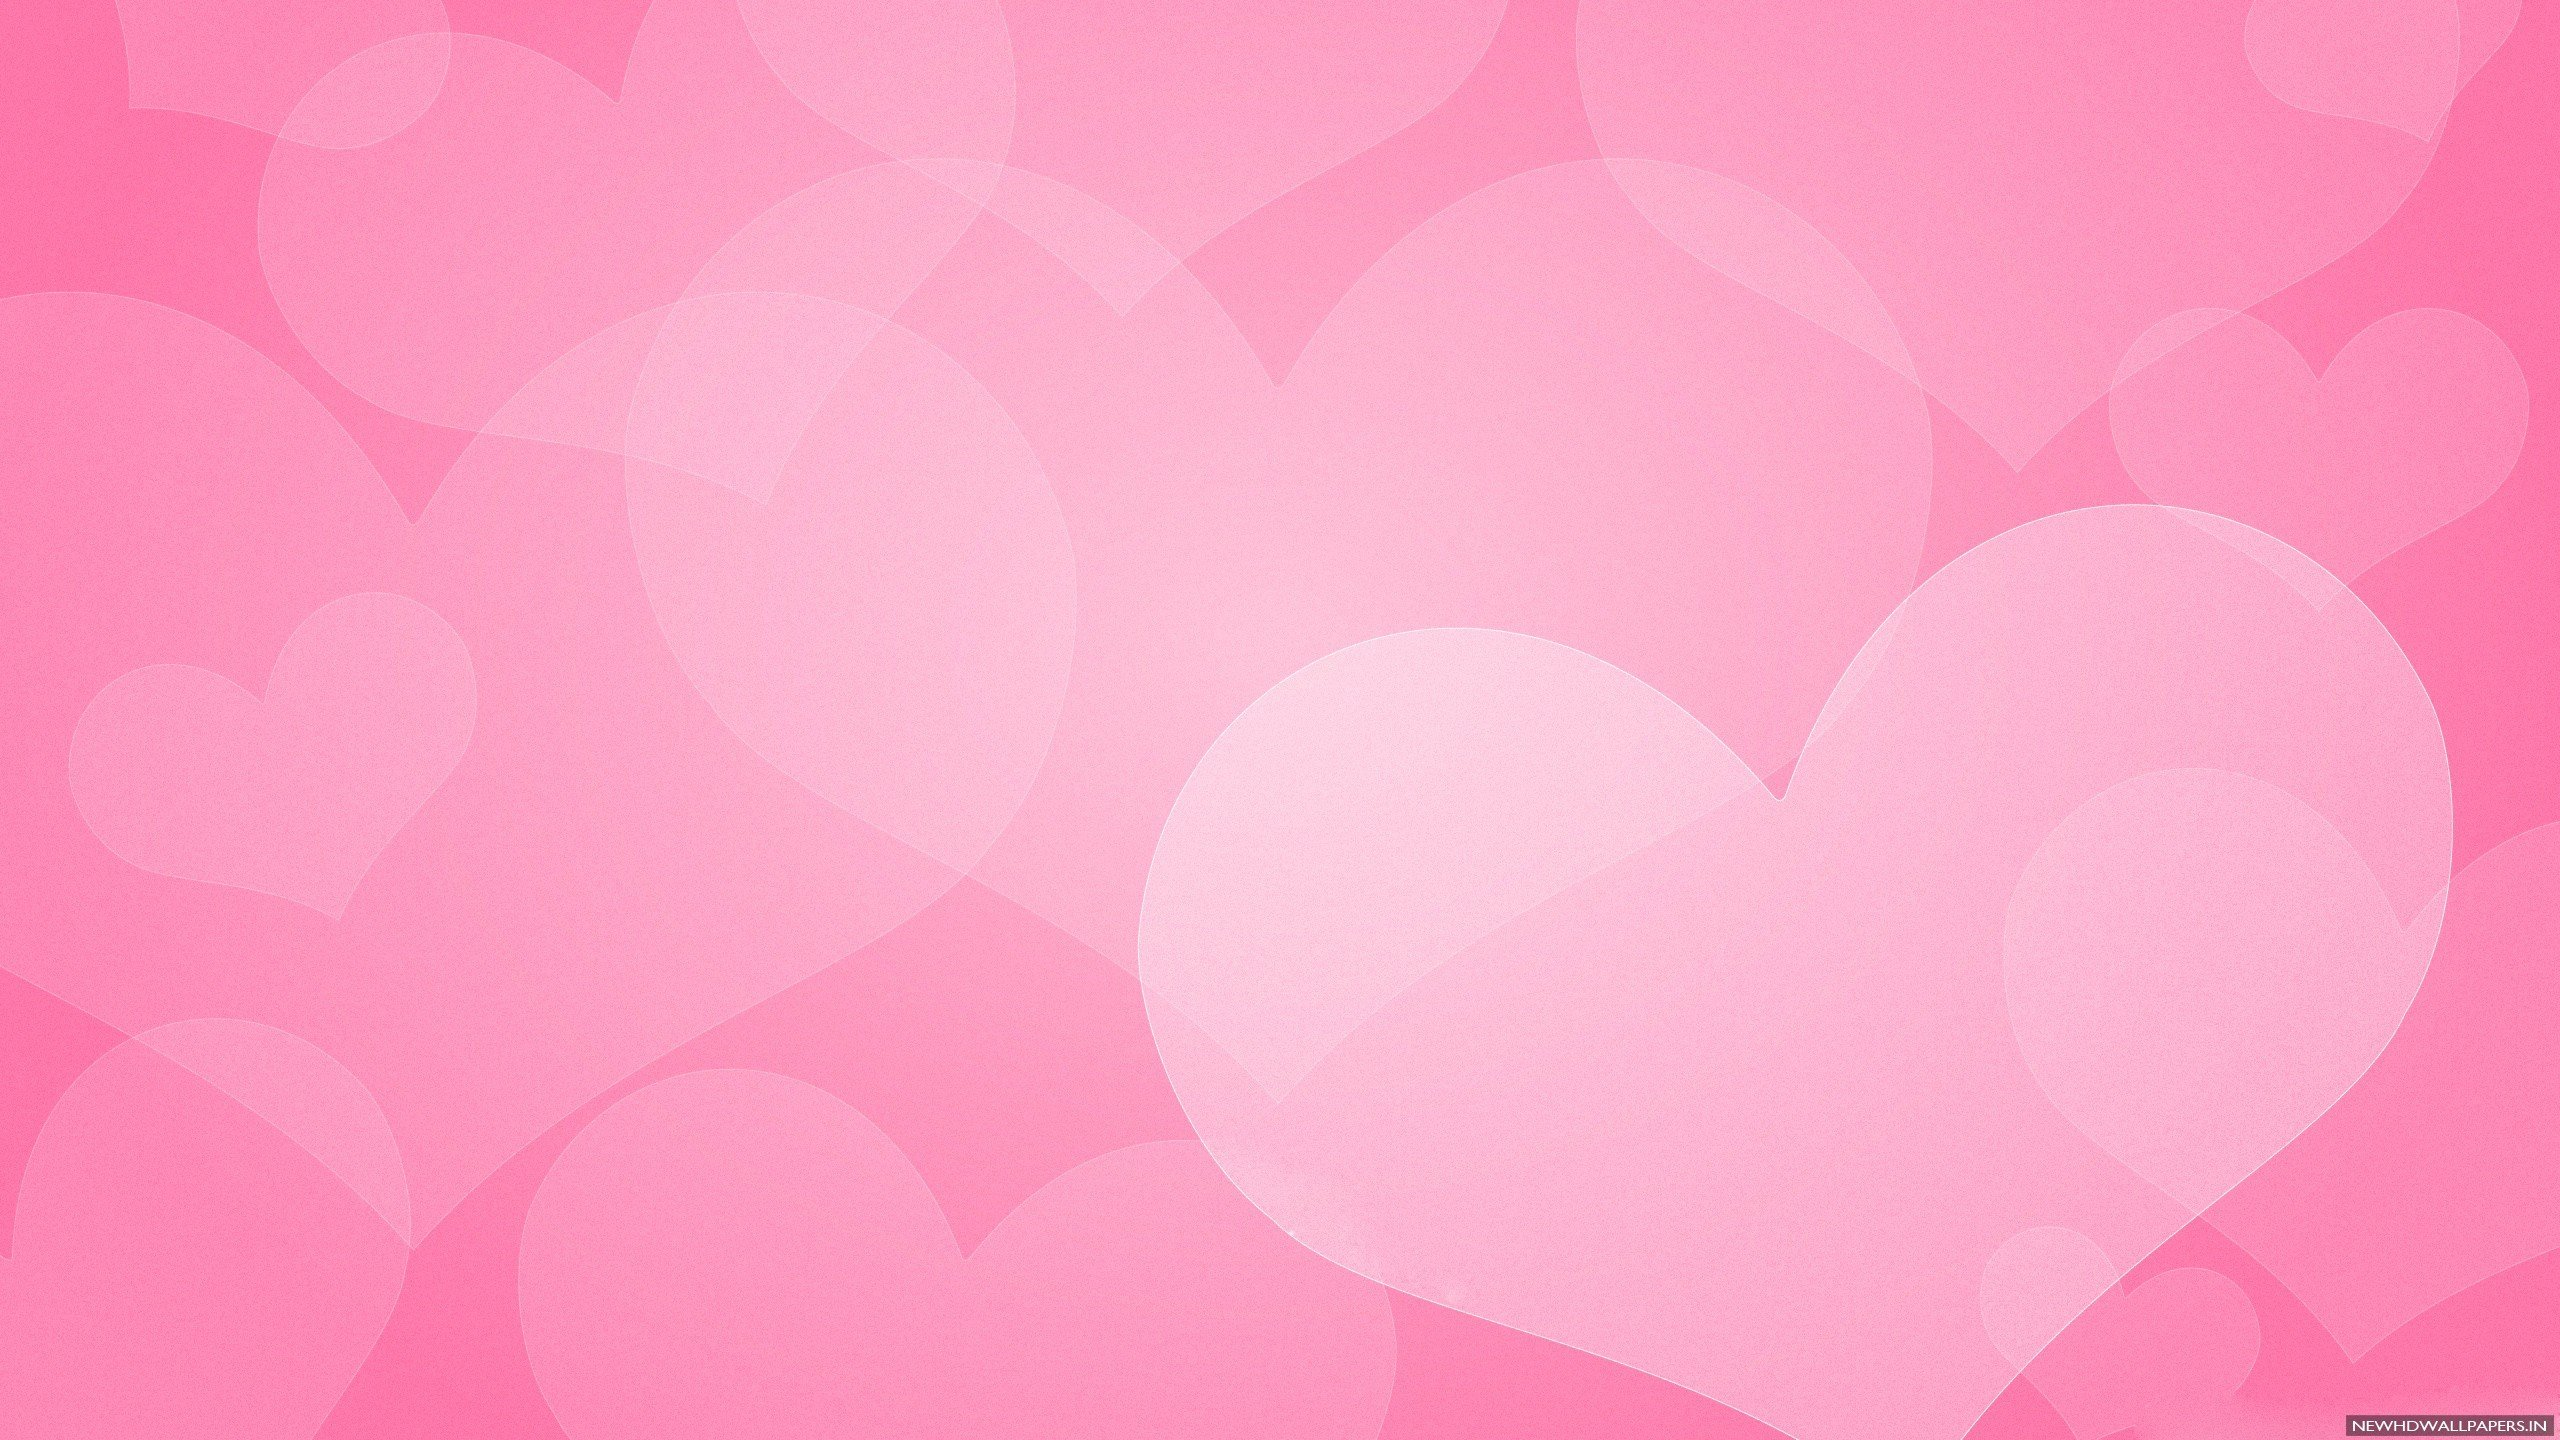 Love Wallpaper Big Size Hd : Love Background - WallpaperSafari